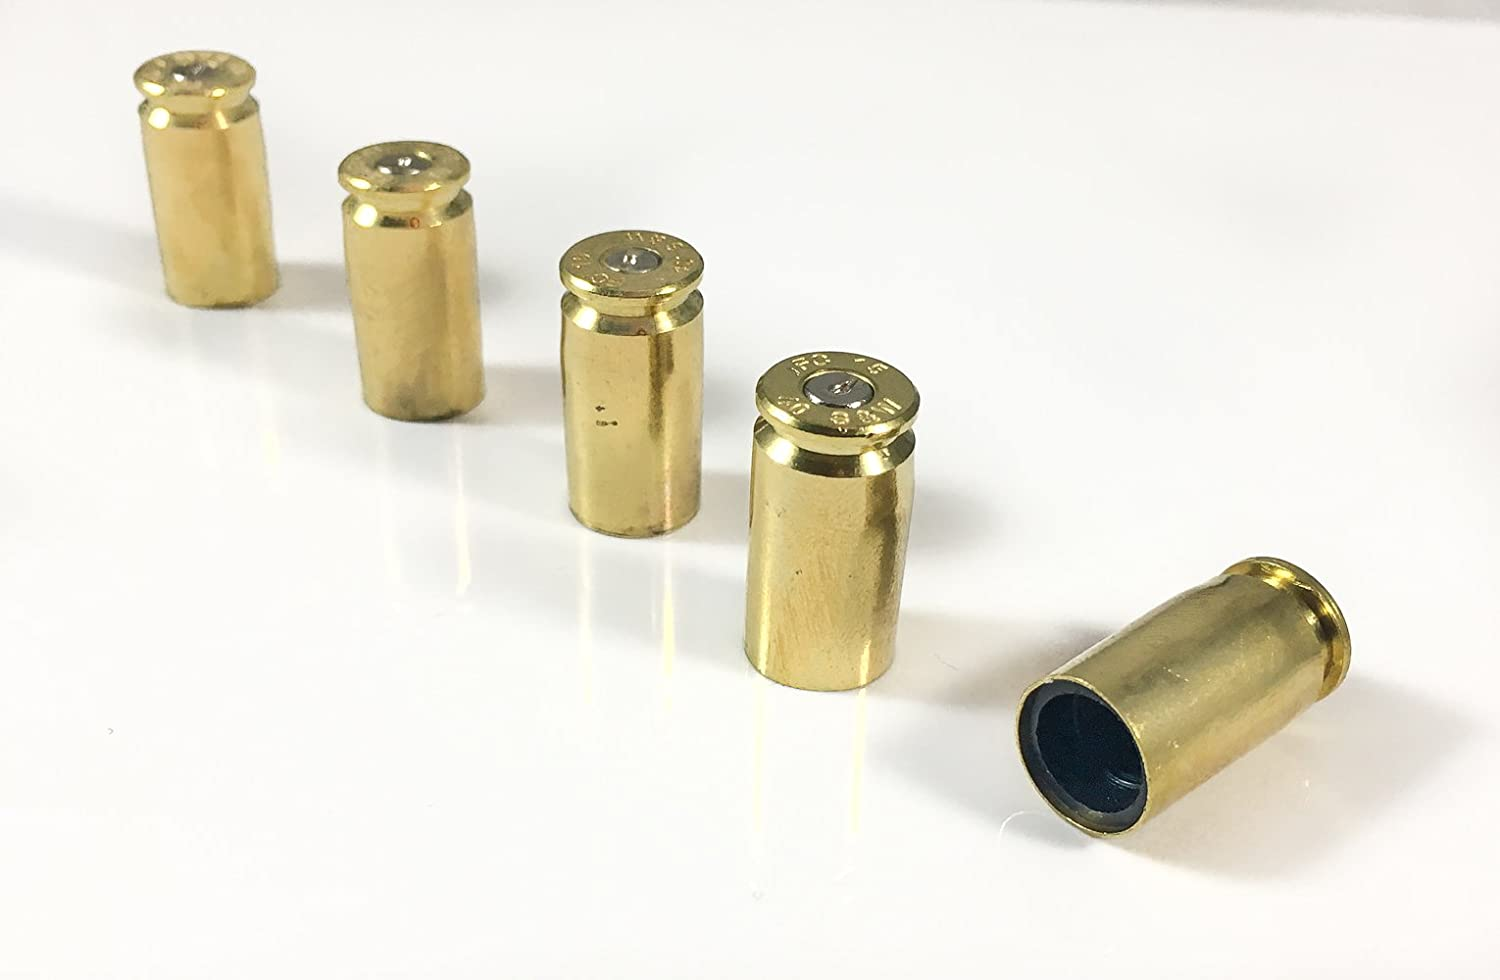 Hollow-Point Gear Bullet Tire Caps for of Set 5 OFFer - Jeeps Max 88% OFF Recycled